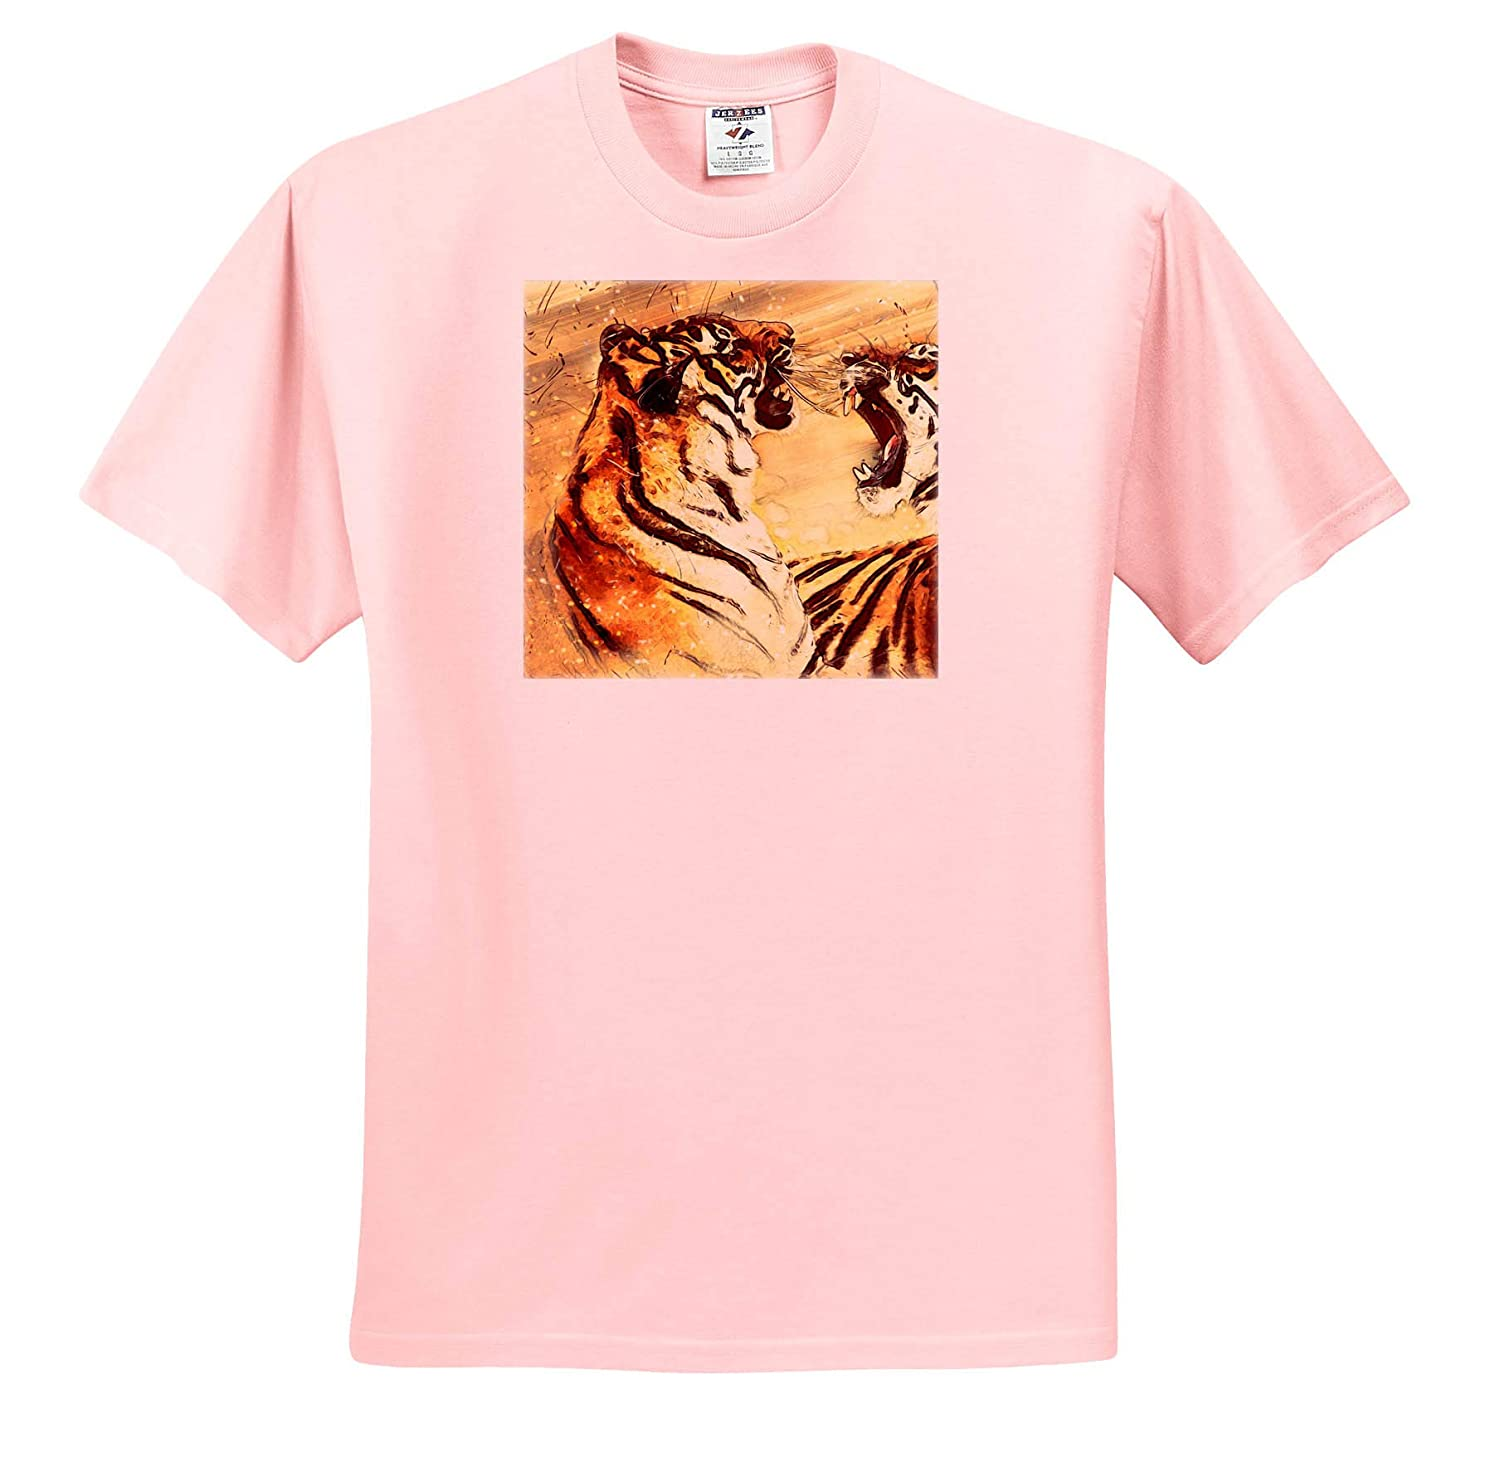 3dRose Sven Herkenrath Animal Illustration of Two Fighting Tigers with Colorful Background T-Shirts